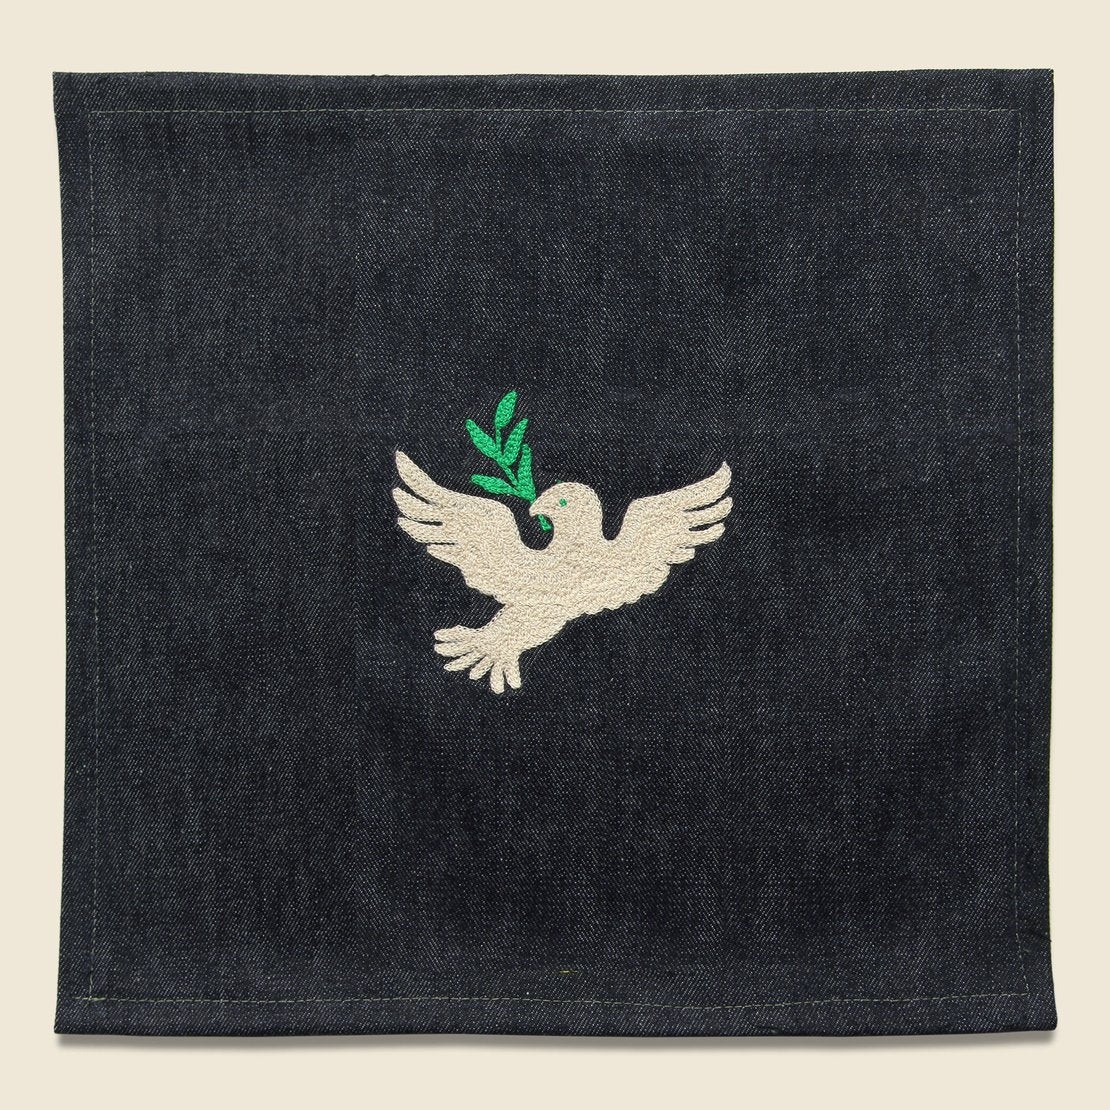 Fort Lonesome Small Direct Stitch Embroidery - Peace Dove